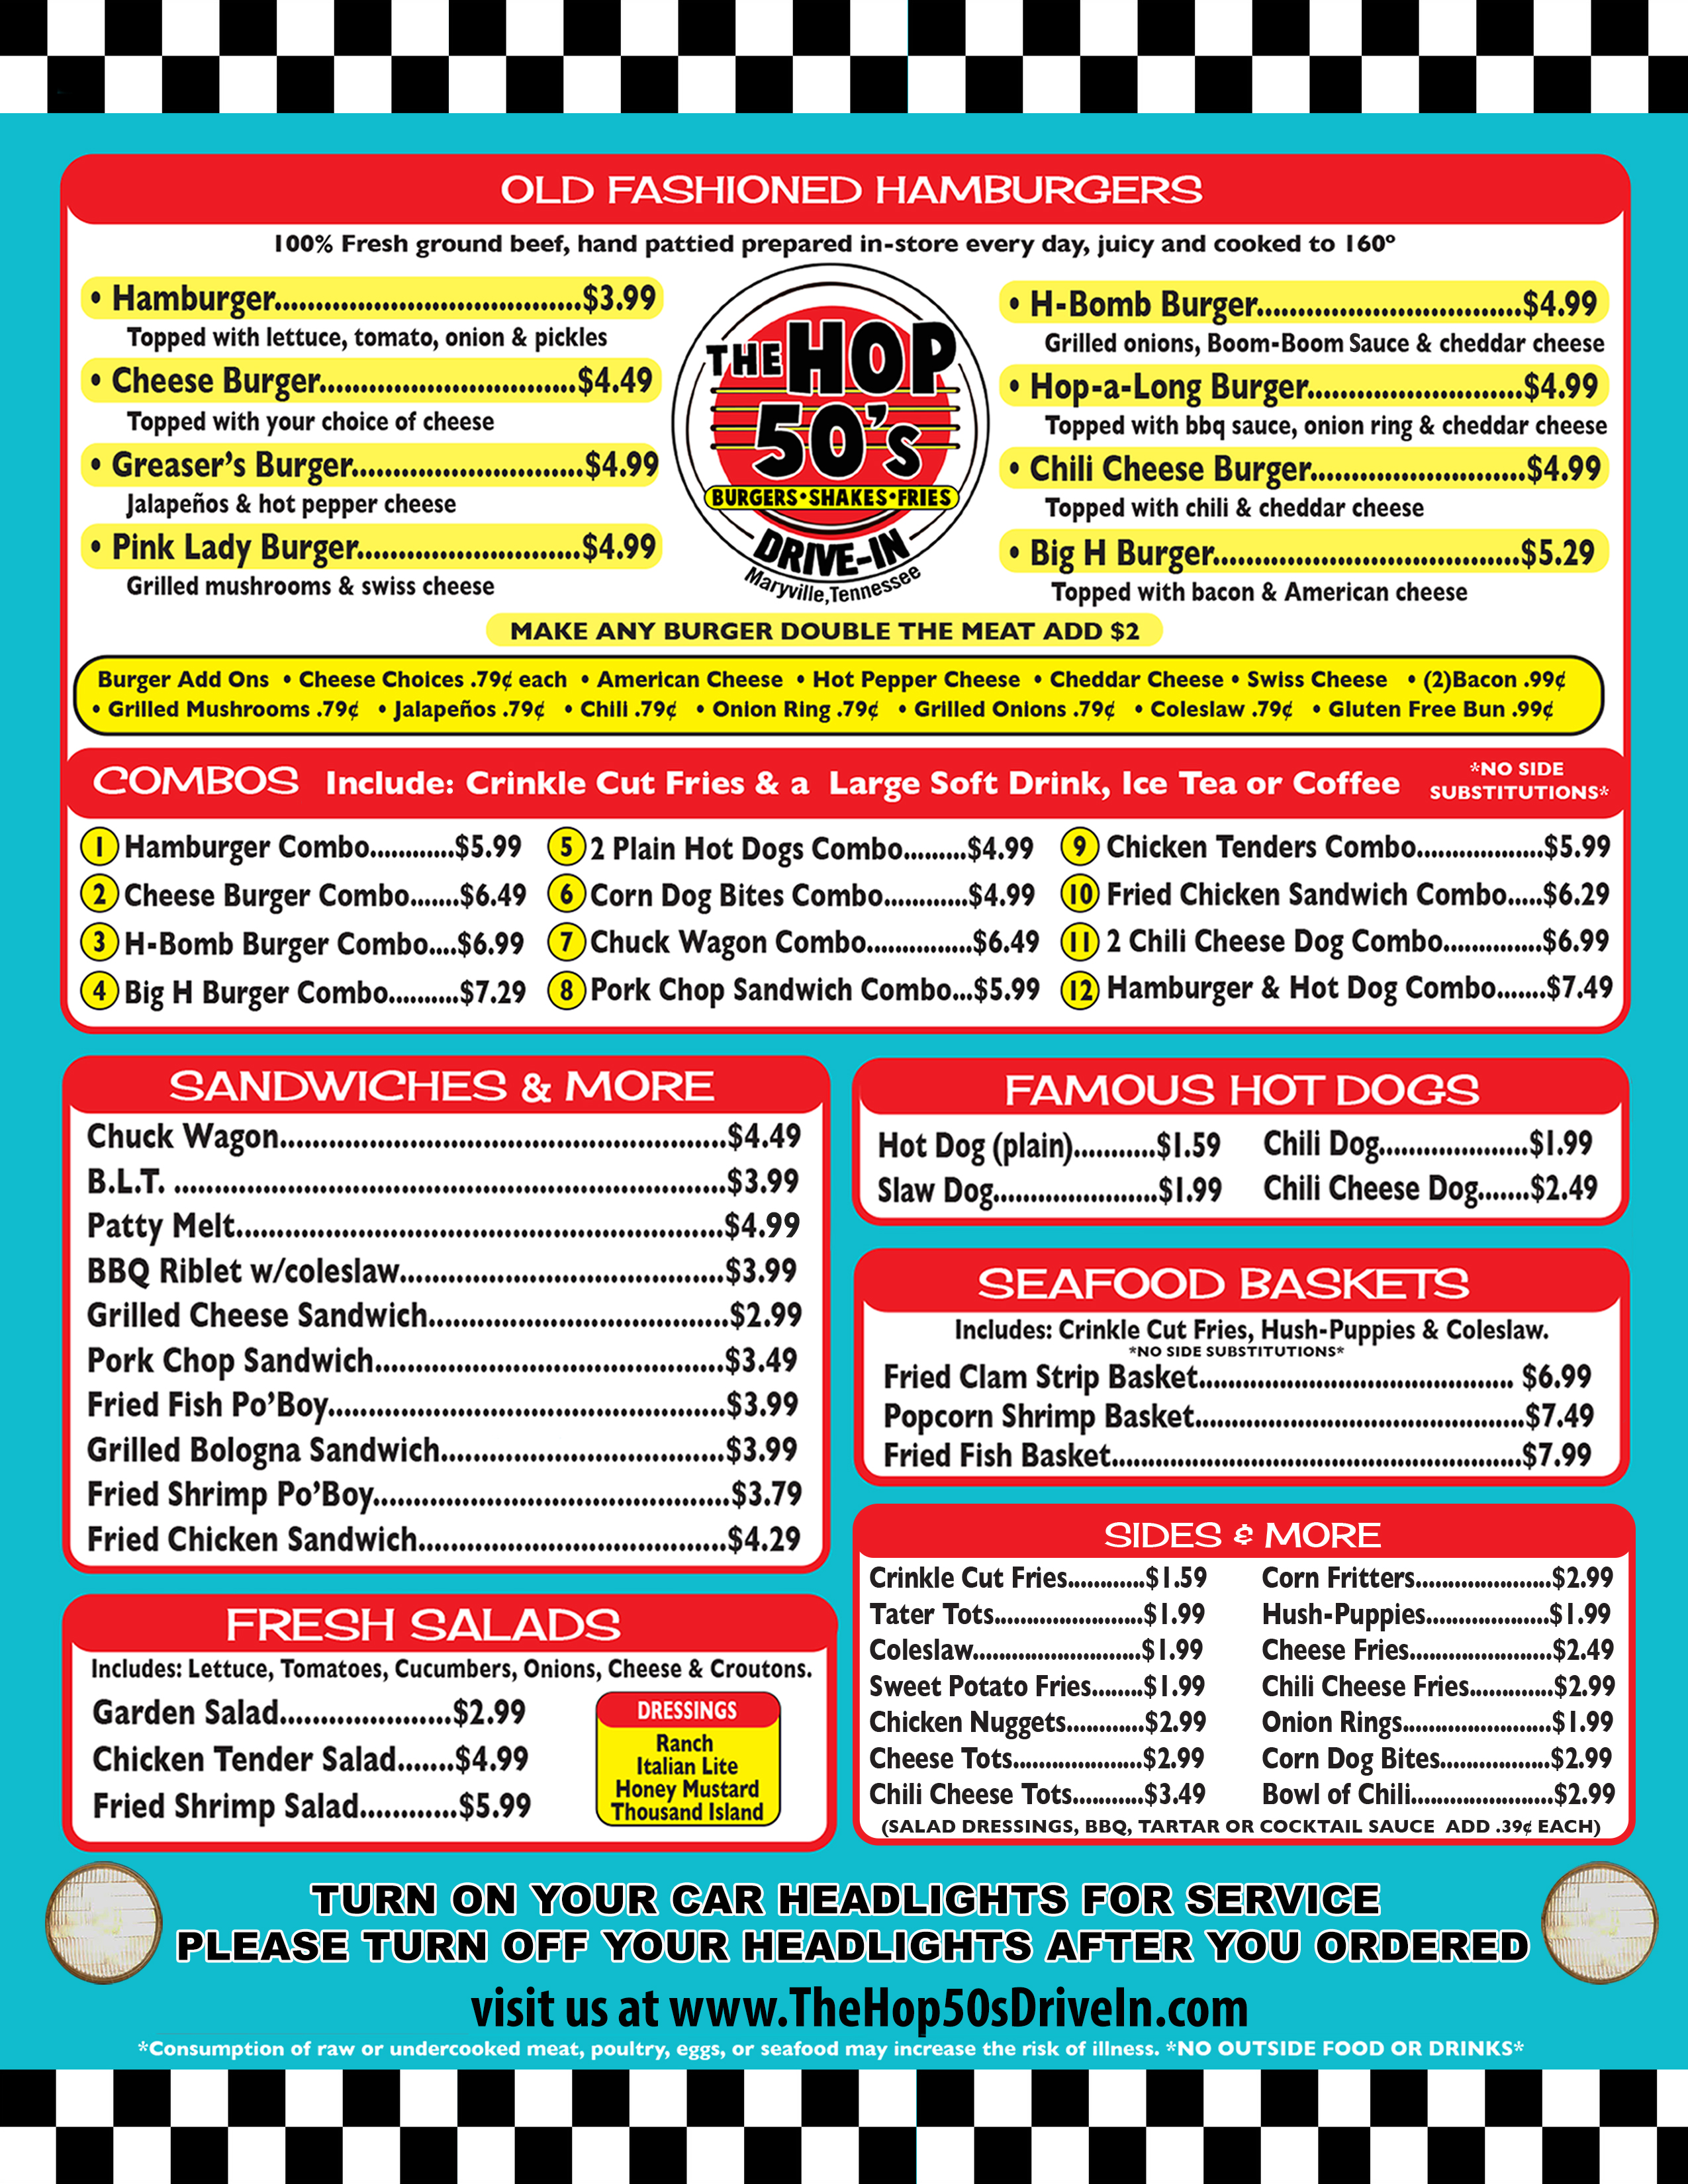 The Hop 50's Drive-in